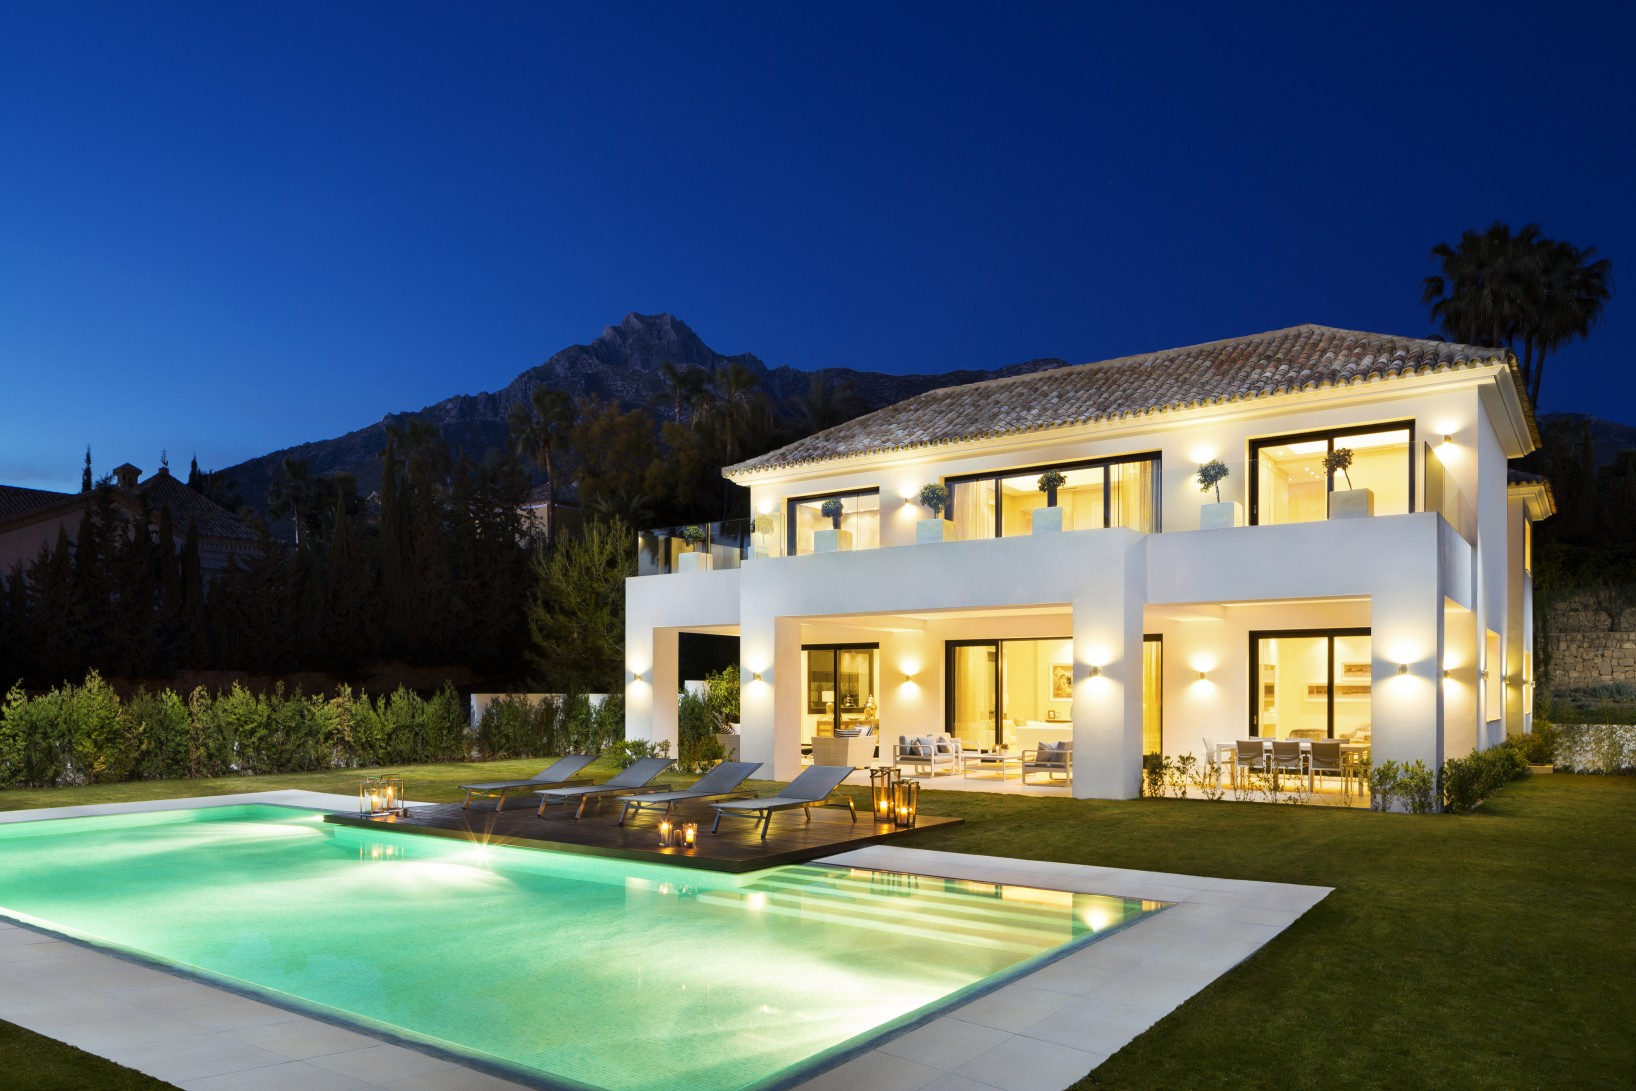 Diana morales properties marbella luxury property in - Ambience home design marbella ...